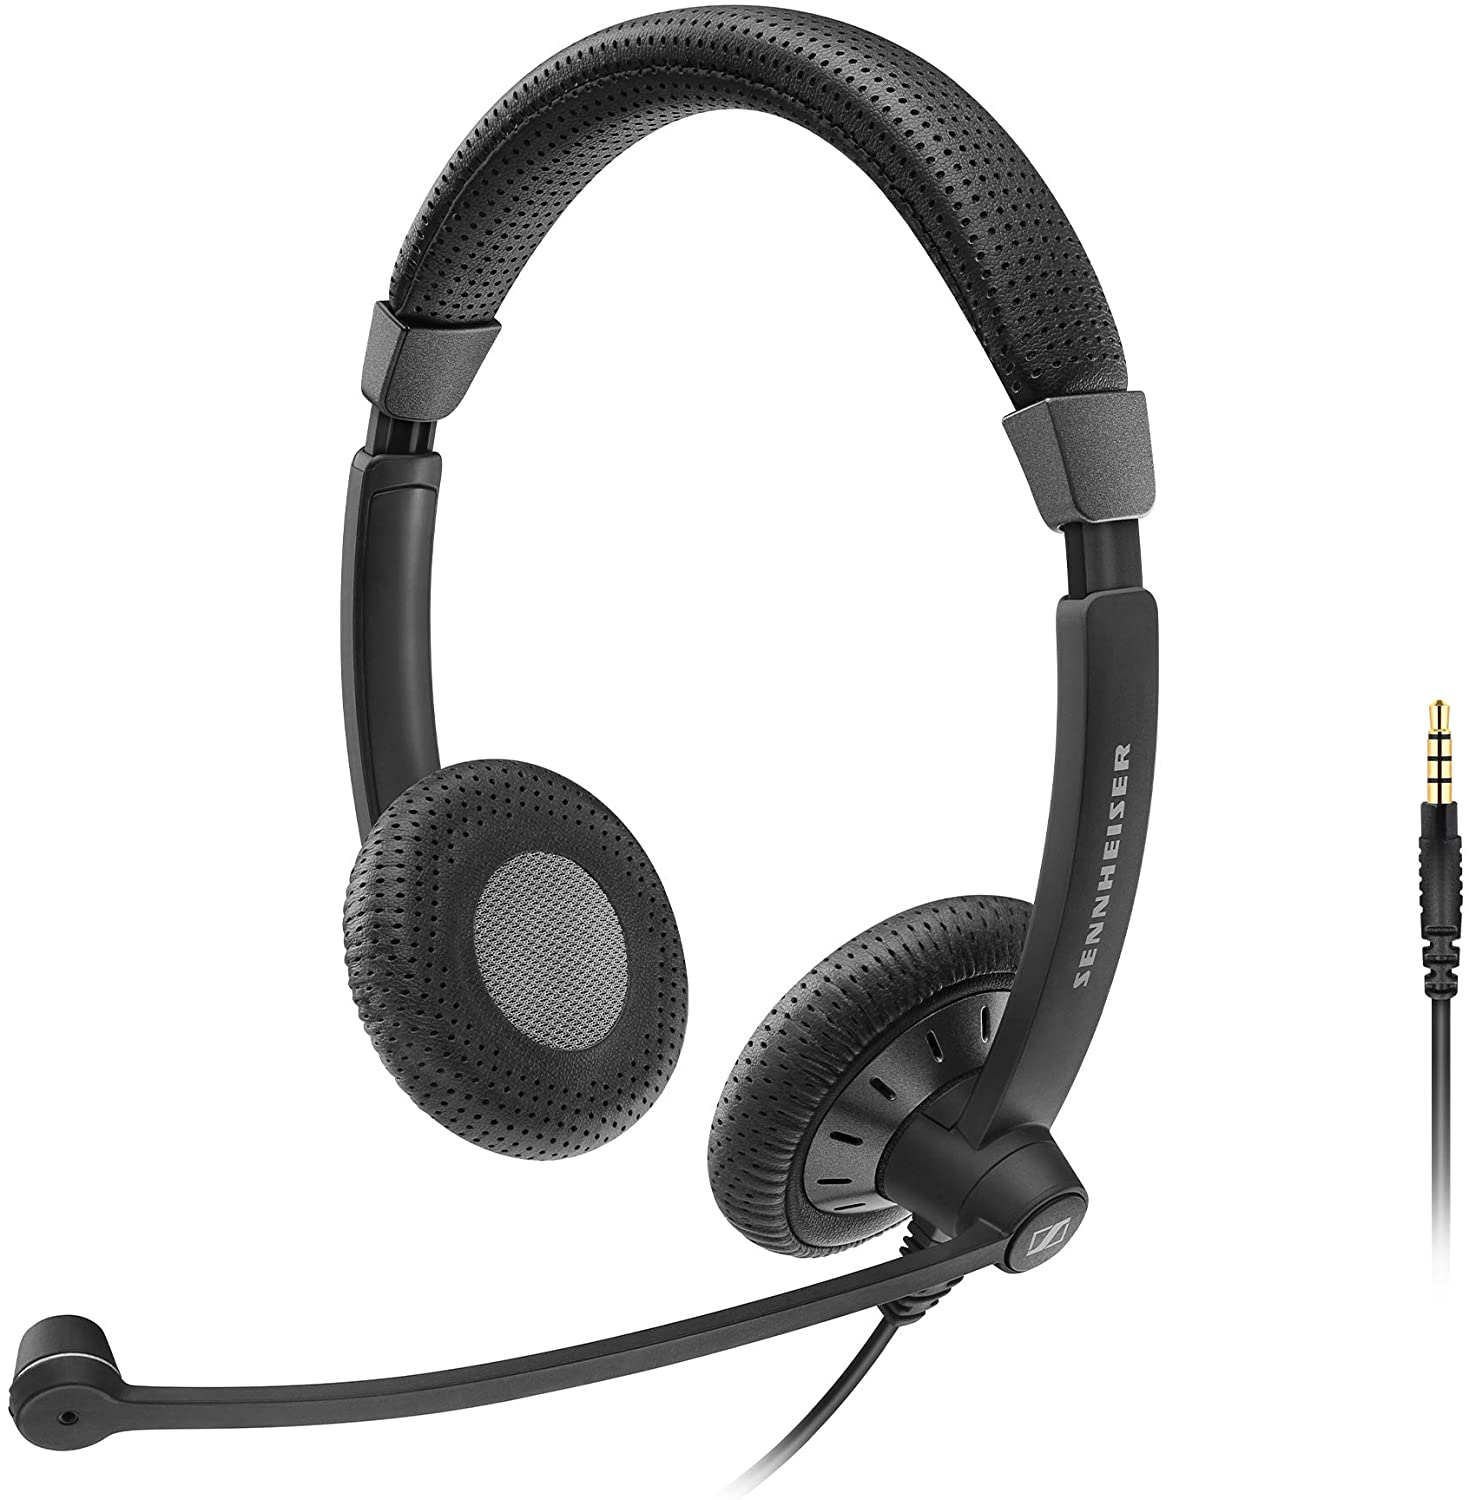 Sennheiser SC 75 3.5mm Double Sided Stereo Headset